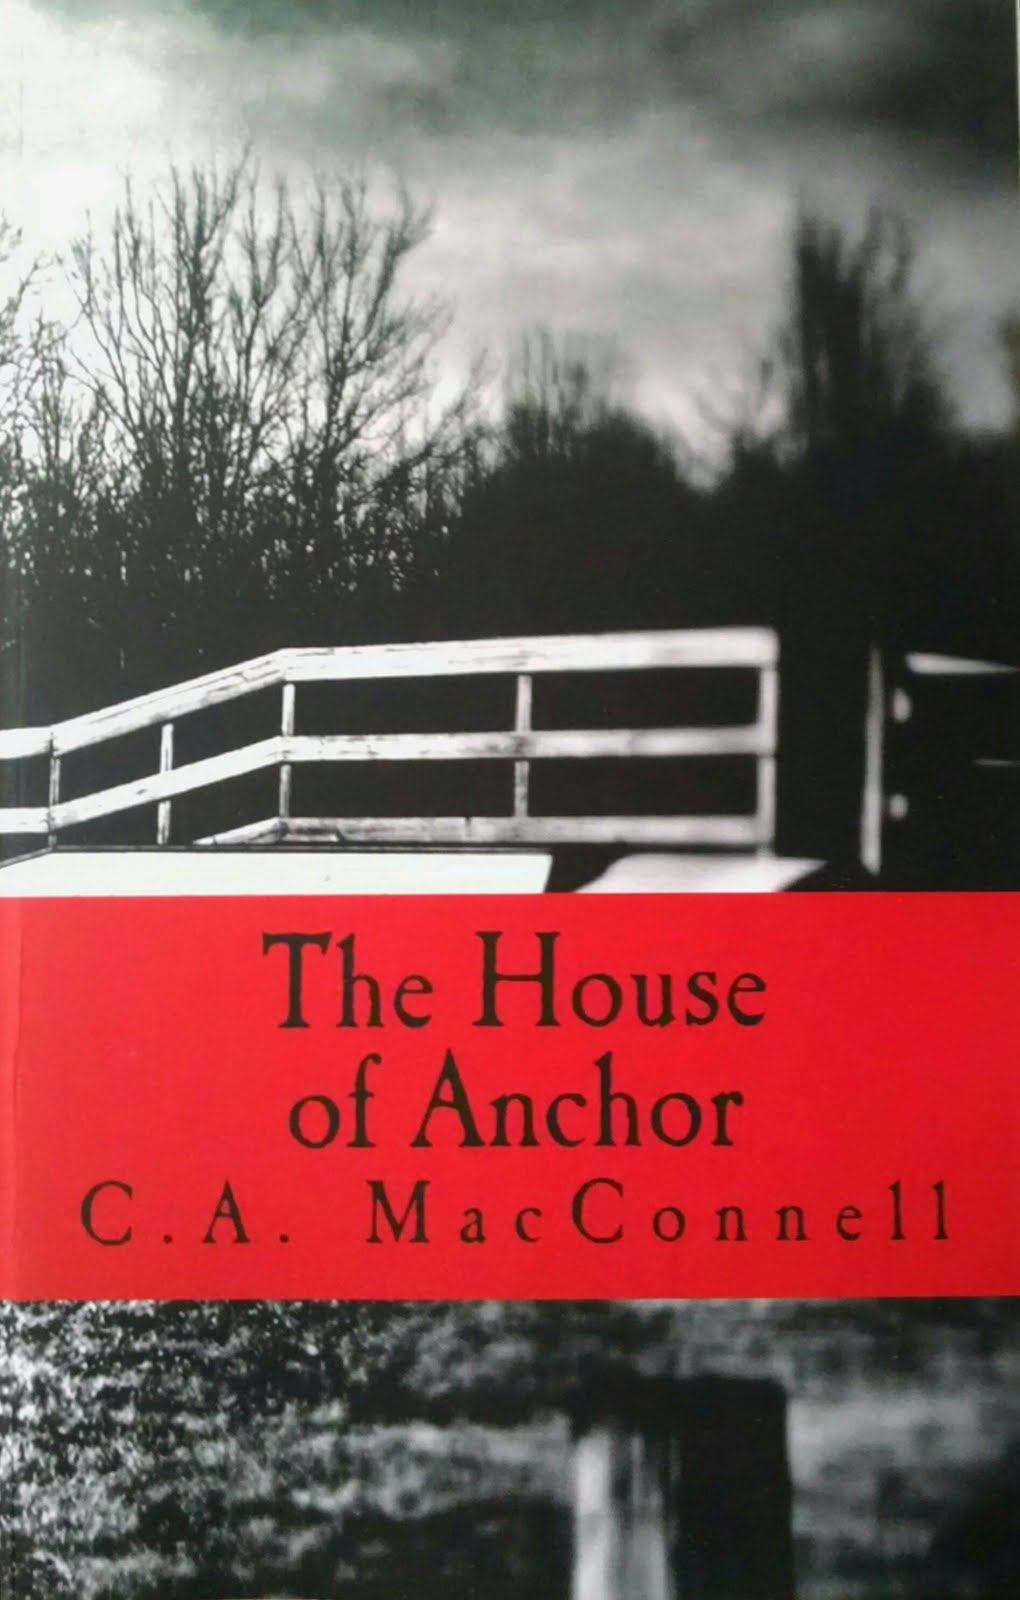 THE HOUSE OF ANCHOR